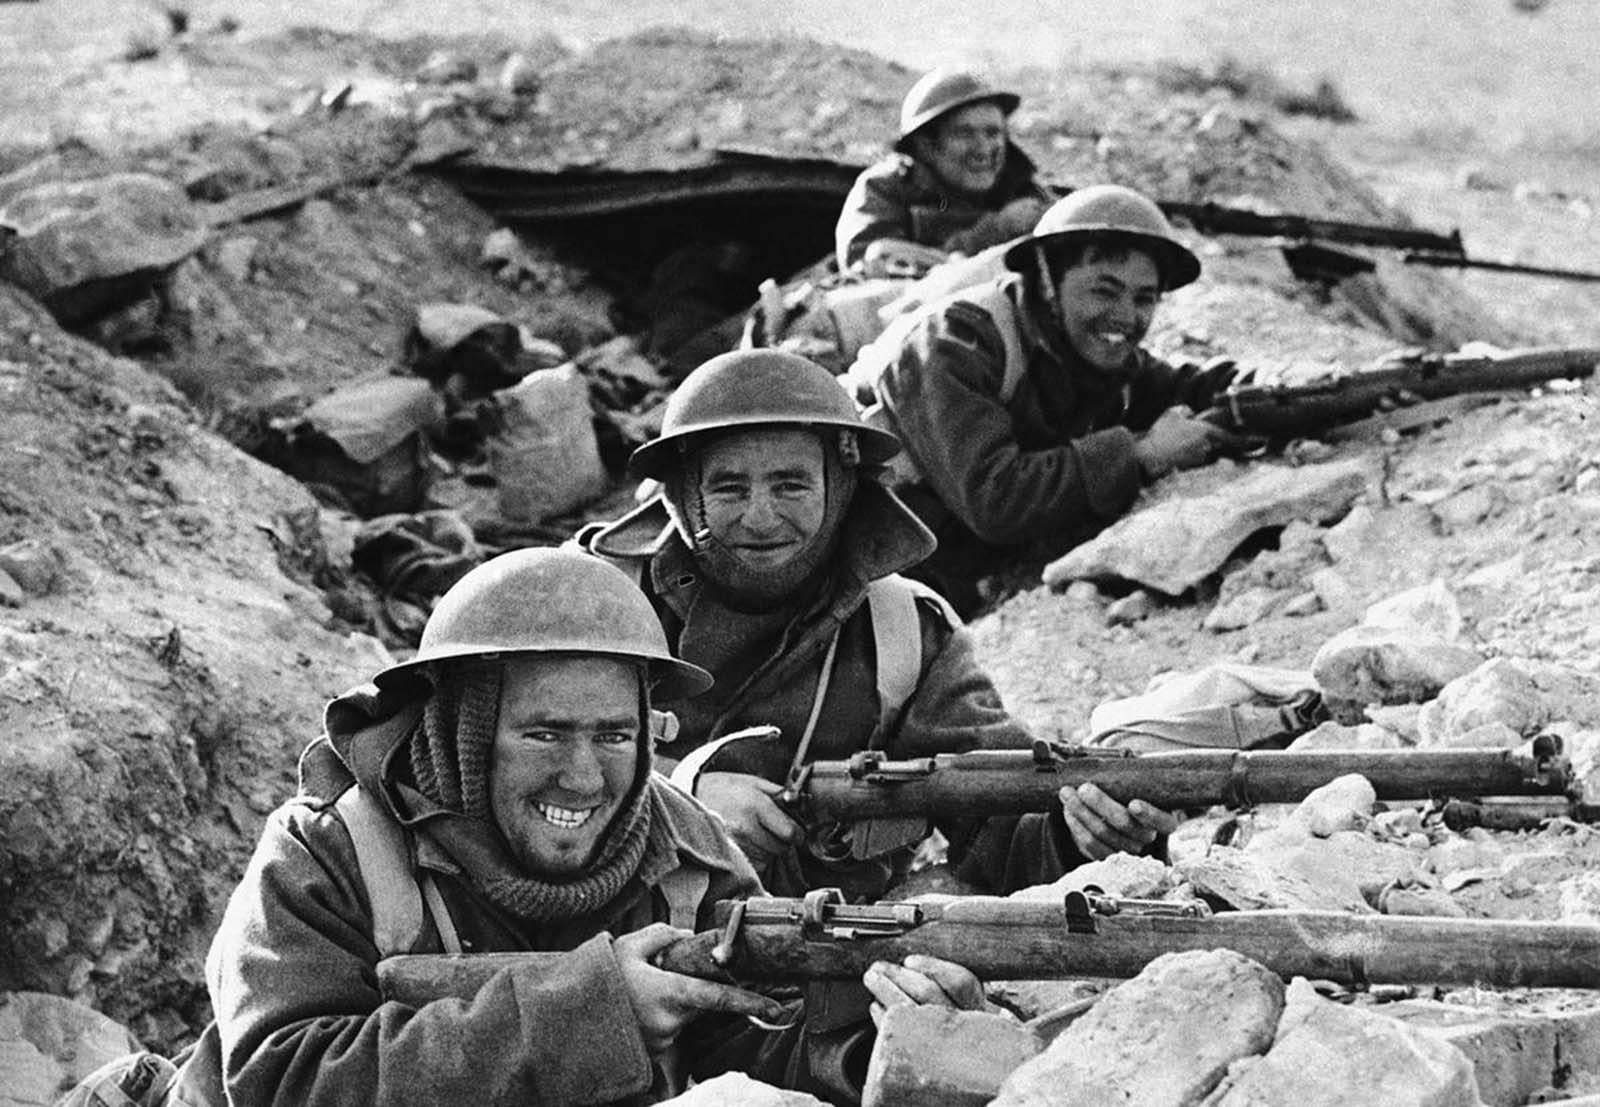 British Infantrymen in position in a shallow trench near Bardia, a Libyan Port, which had been occupied by Italian forces, and fell to the Allies on January 5, 1941, after a 20-day siege.